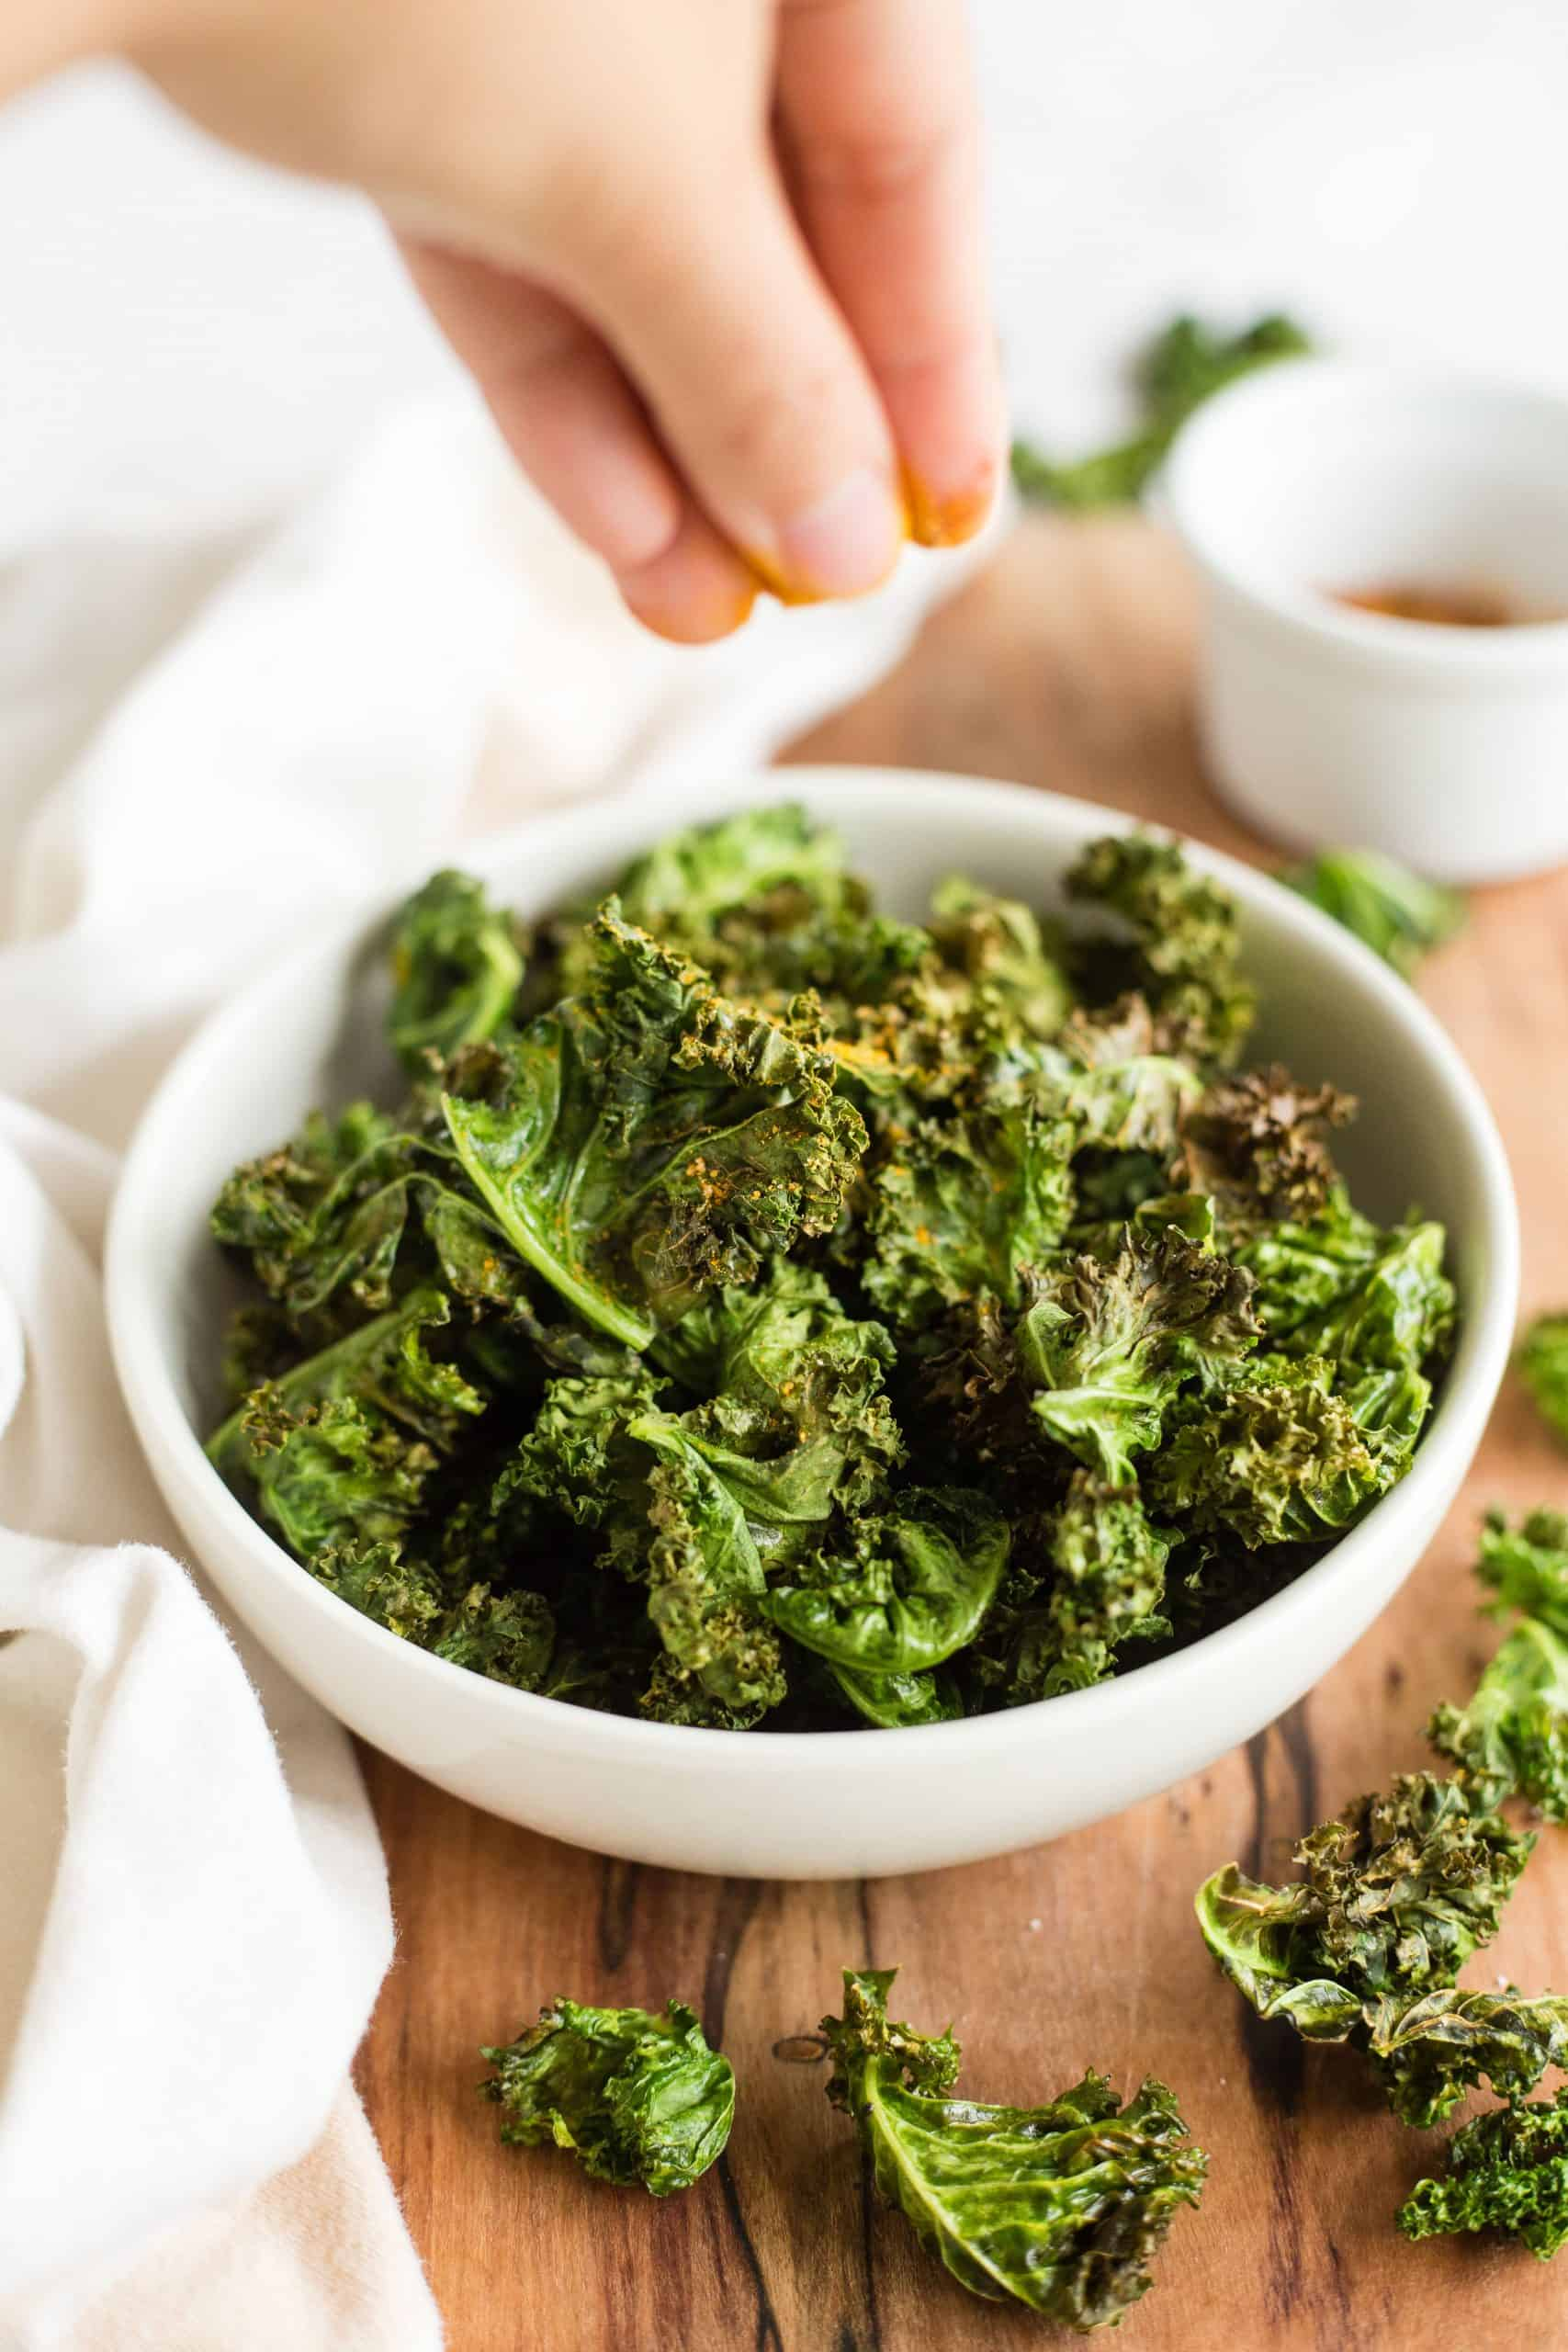 Hand sprinkling spices over a bowl of kale chips.